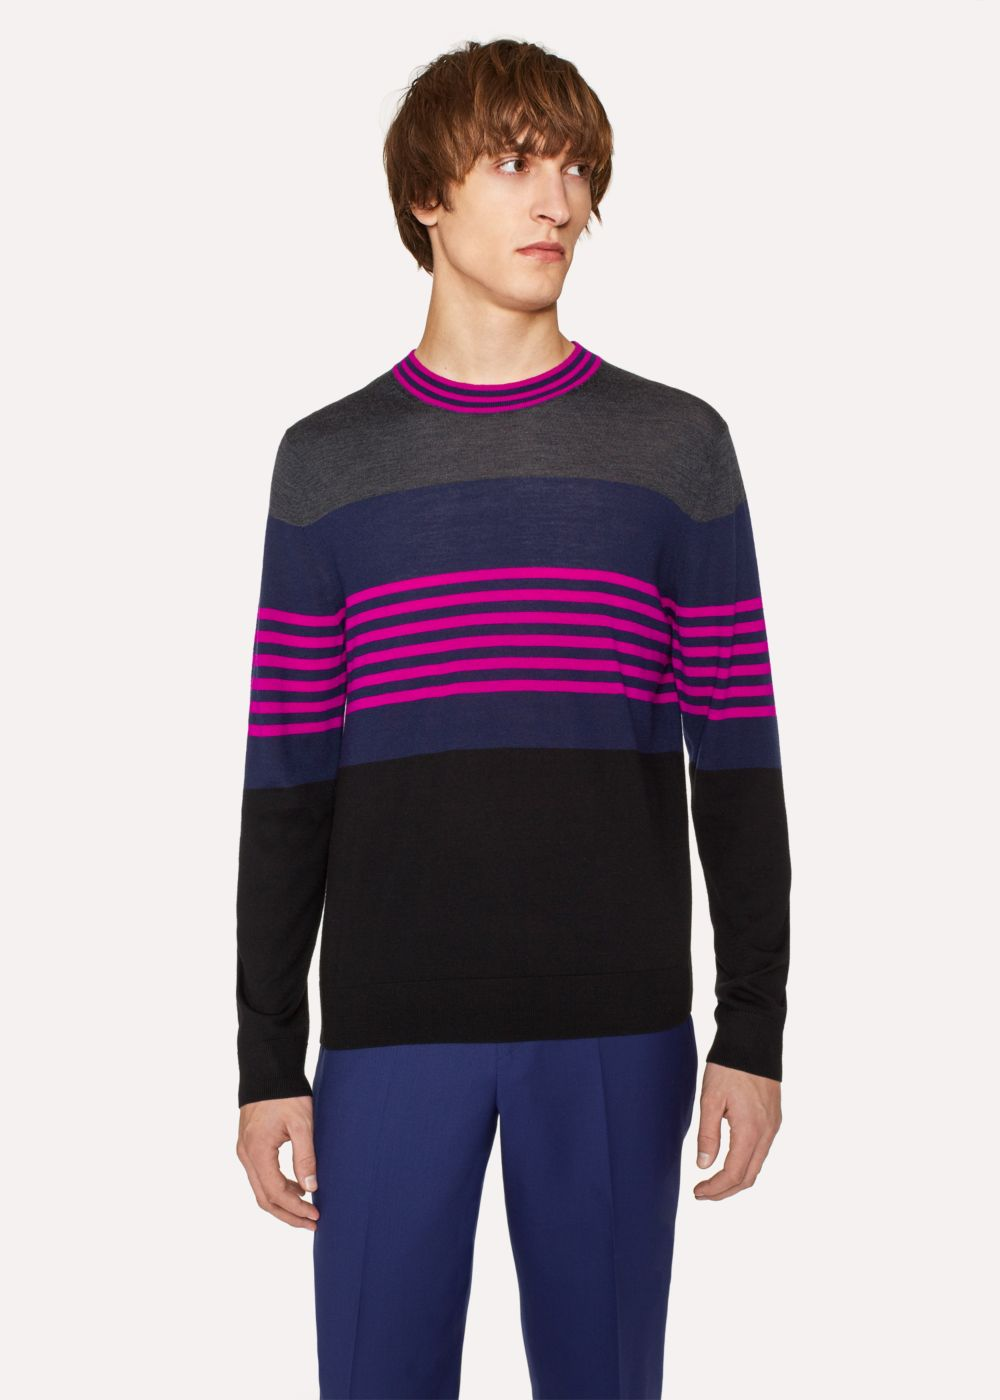 Paul Smith Men's Colour-Block Striped Merino-Wool Sweater